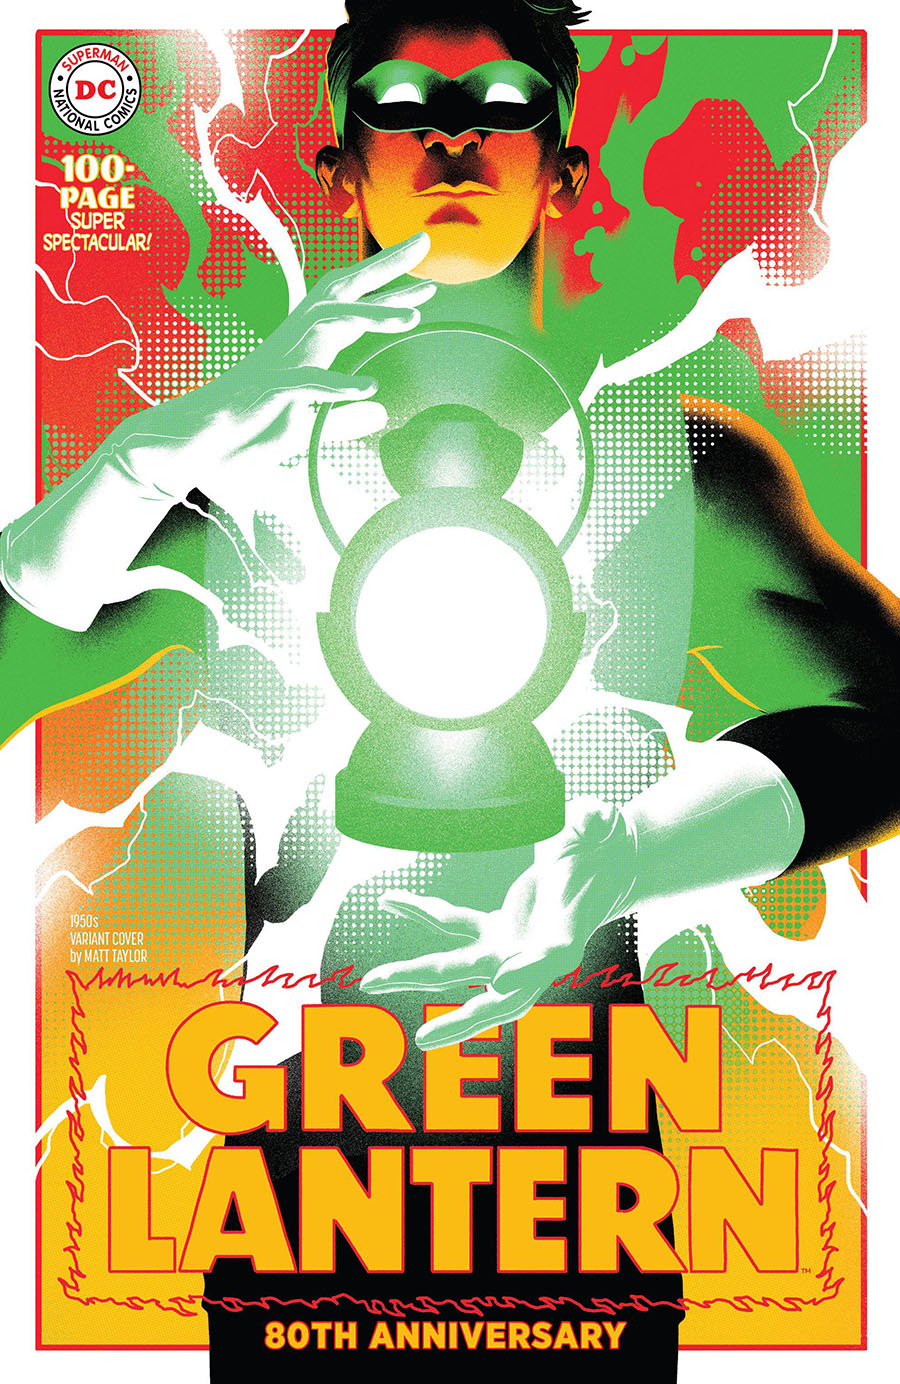 Green Lantern 80th Anniversary 100-Page Super Spectacular #1 (2020)